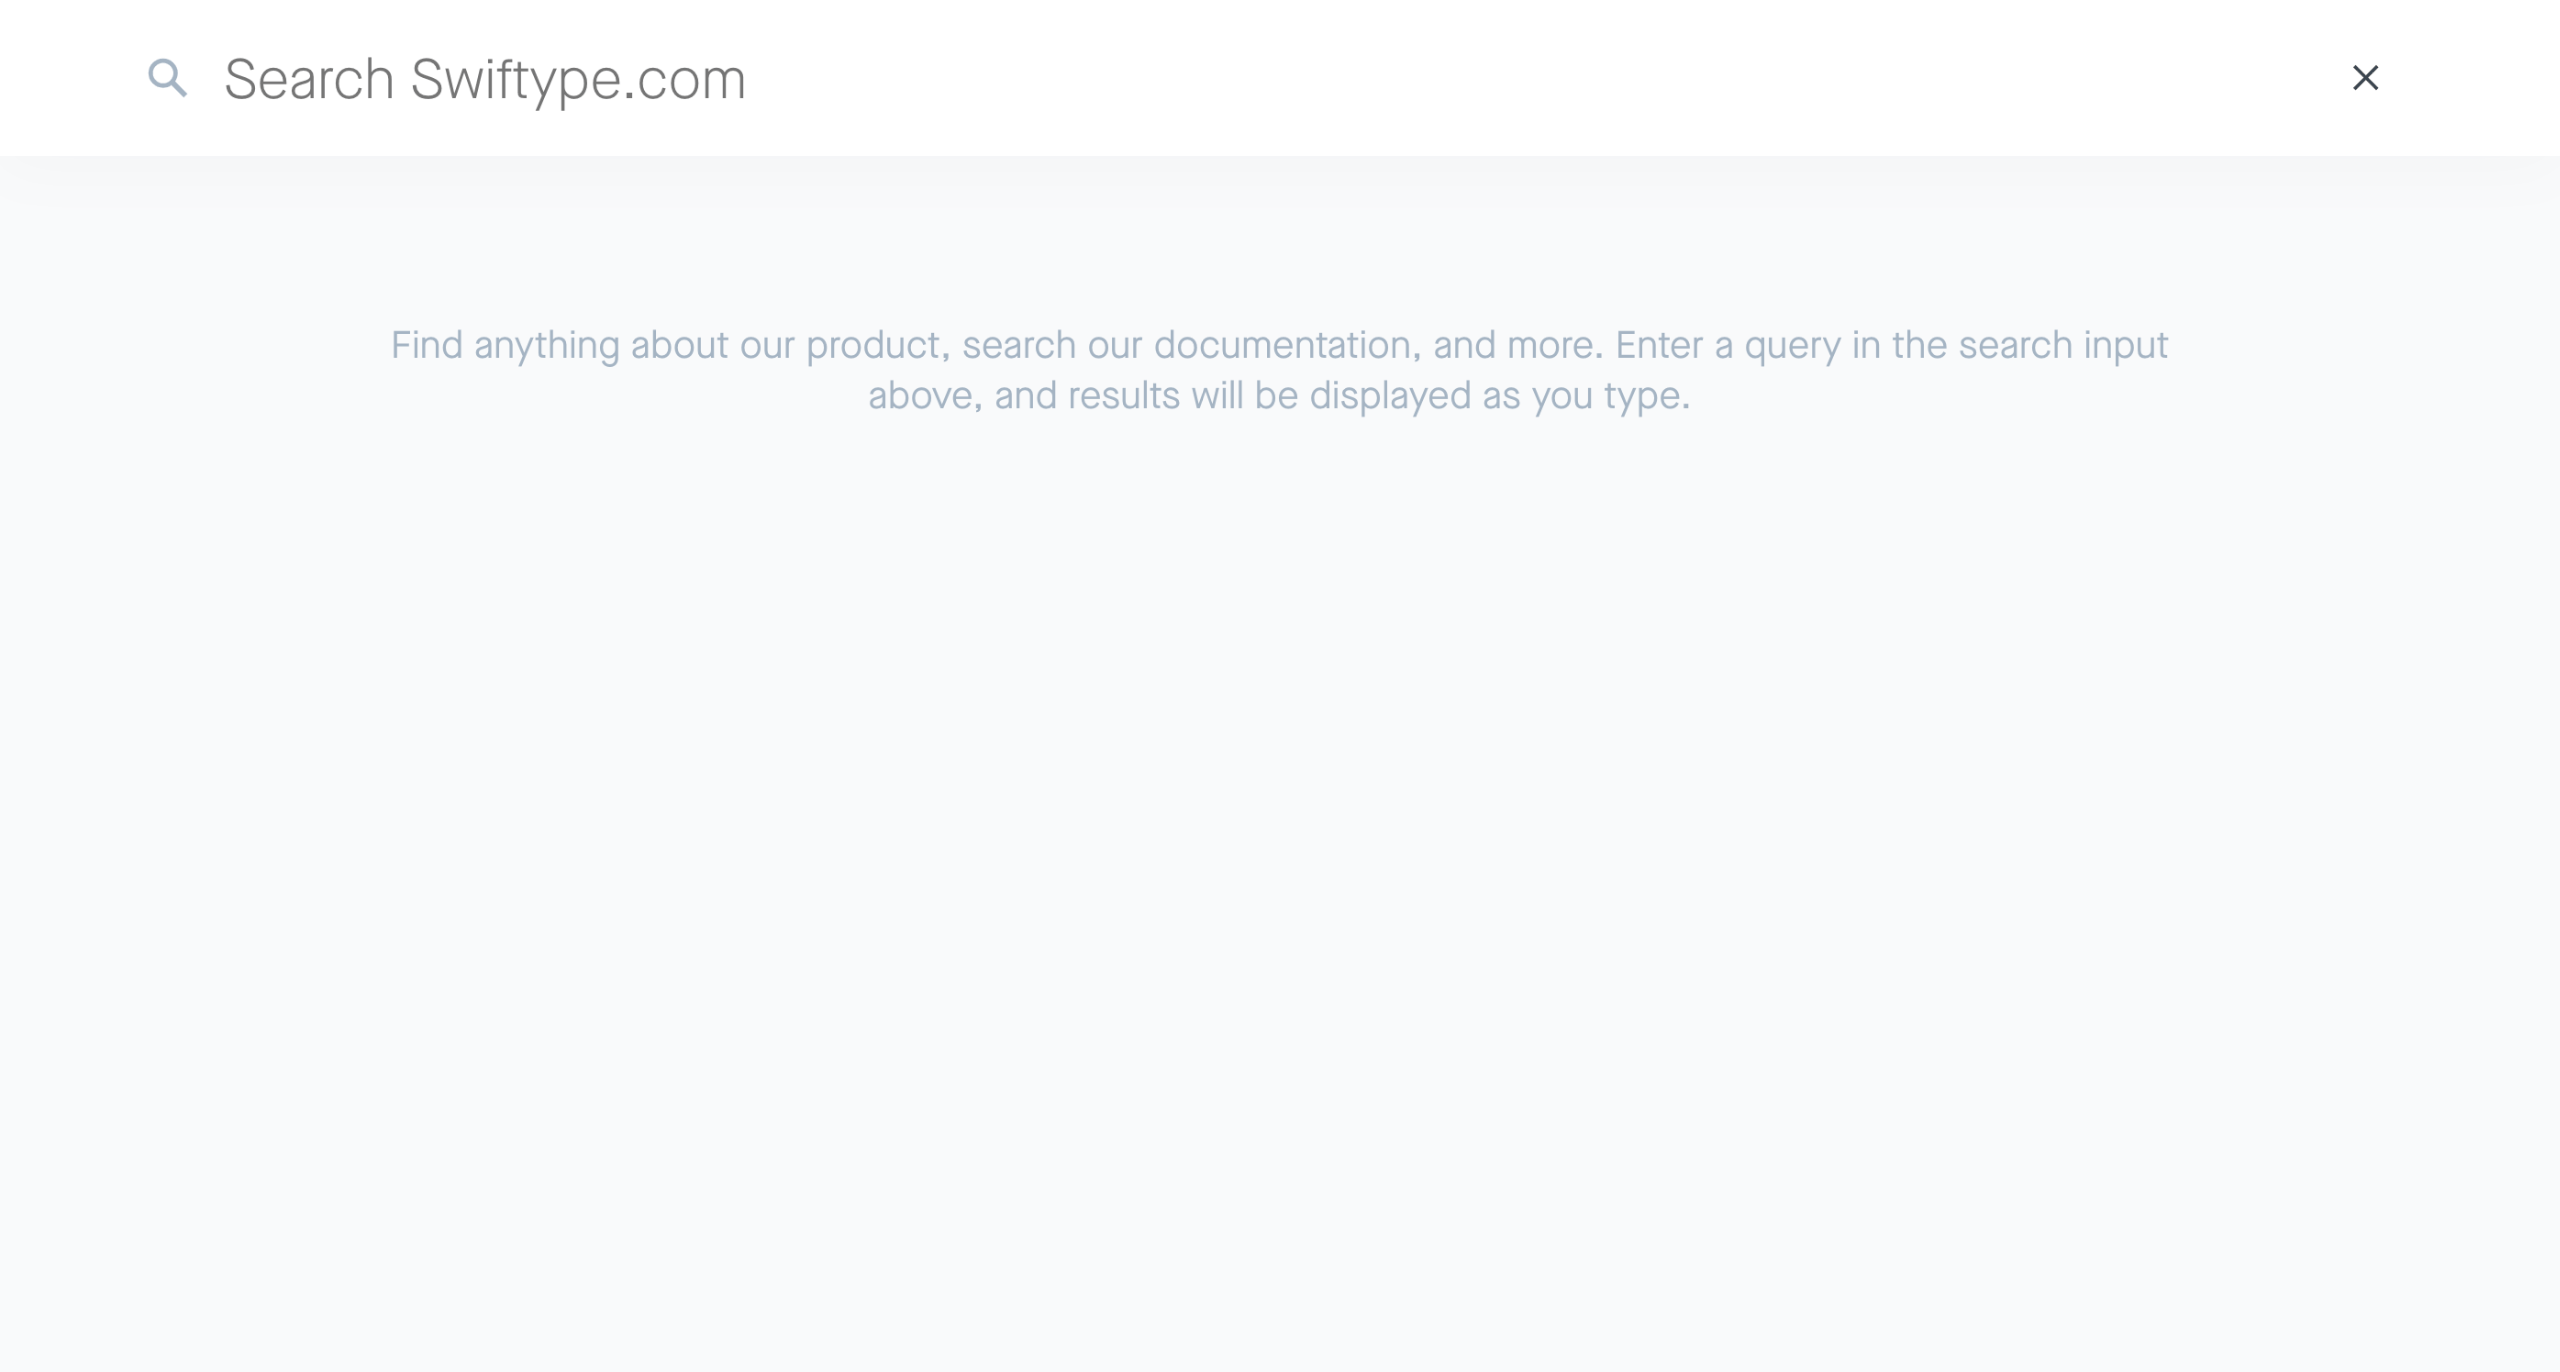 A customized search field from swiftype.com - it is slick, minimal, and has character.